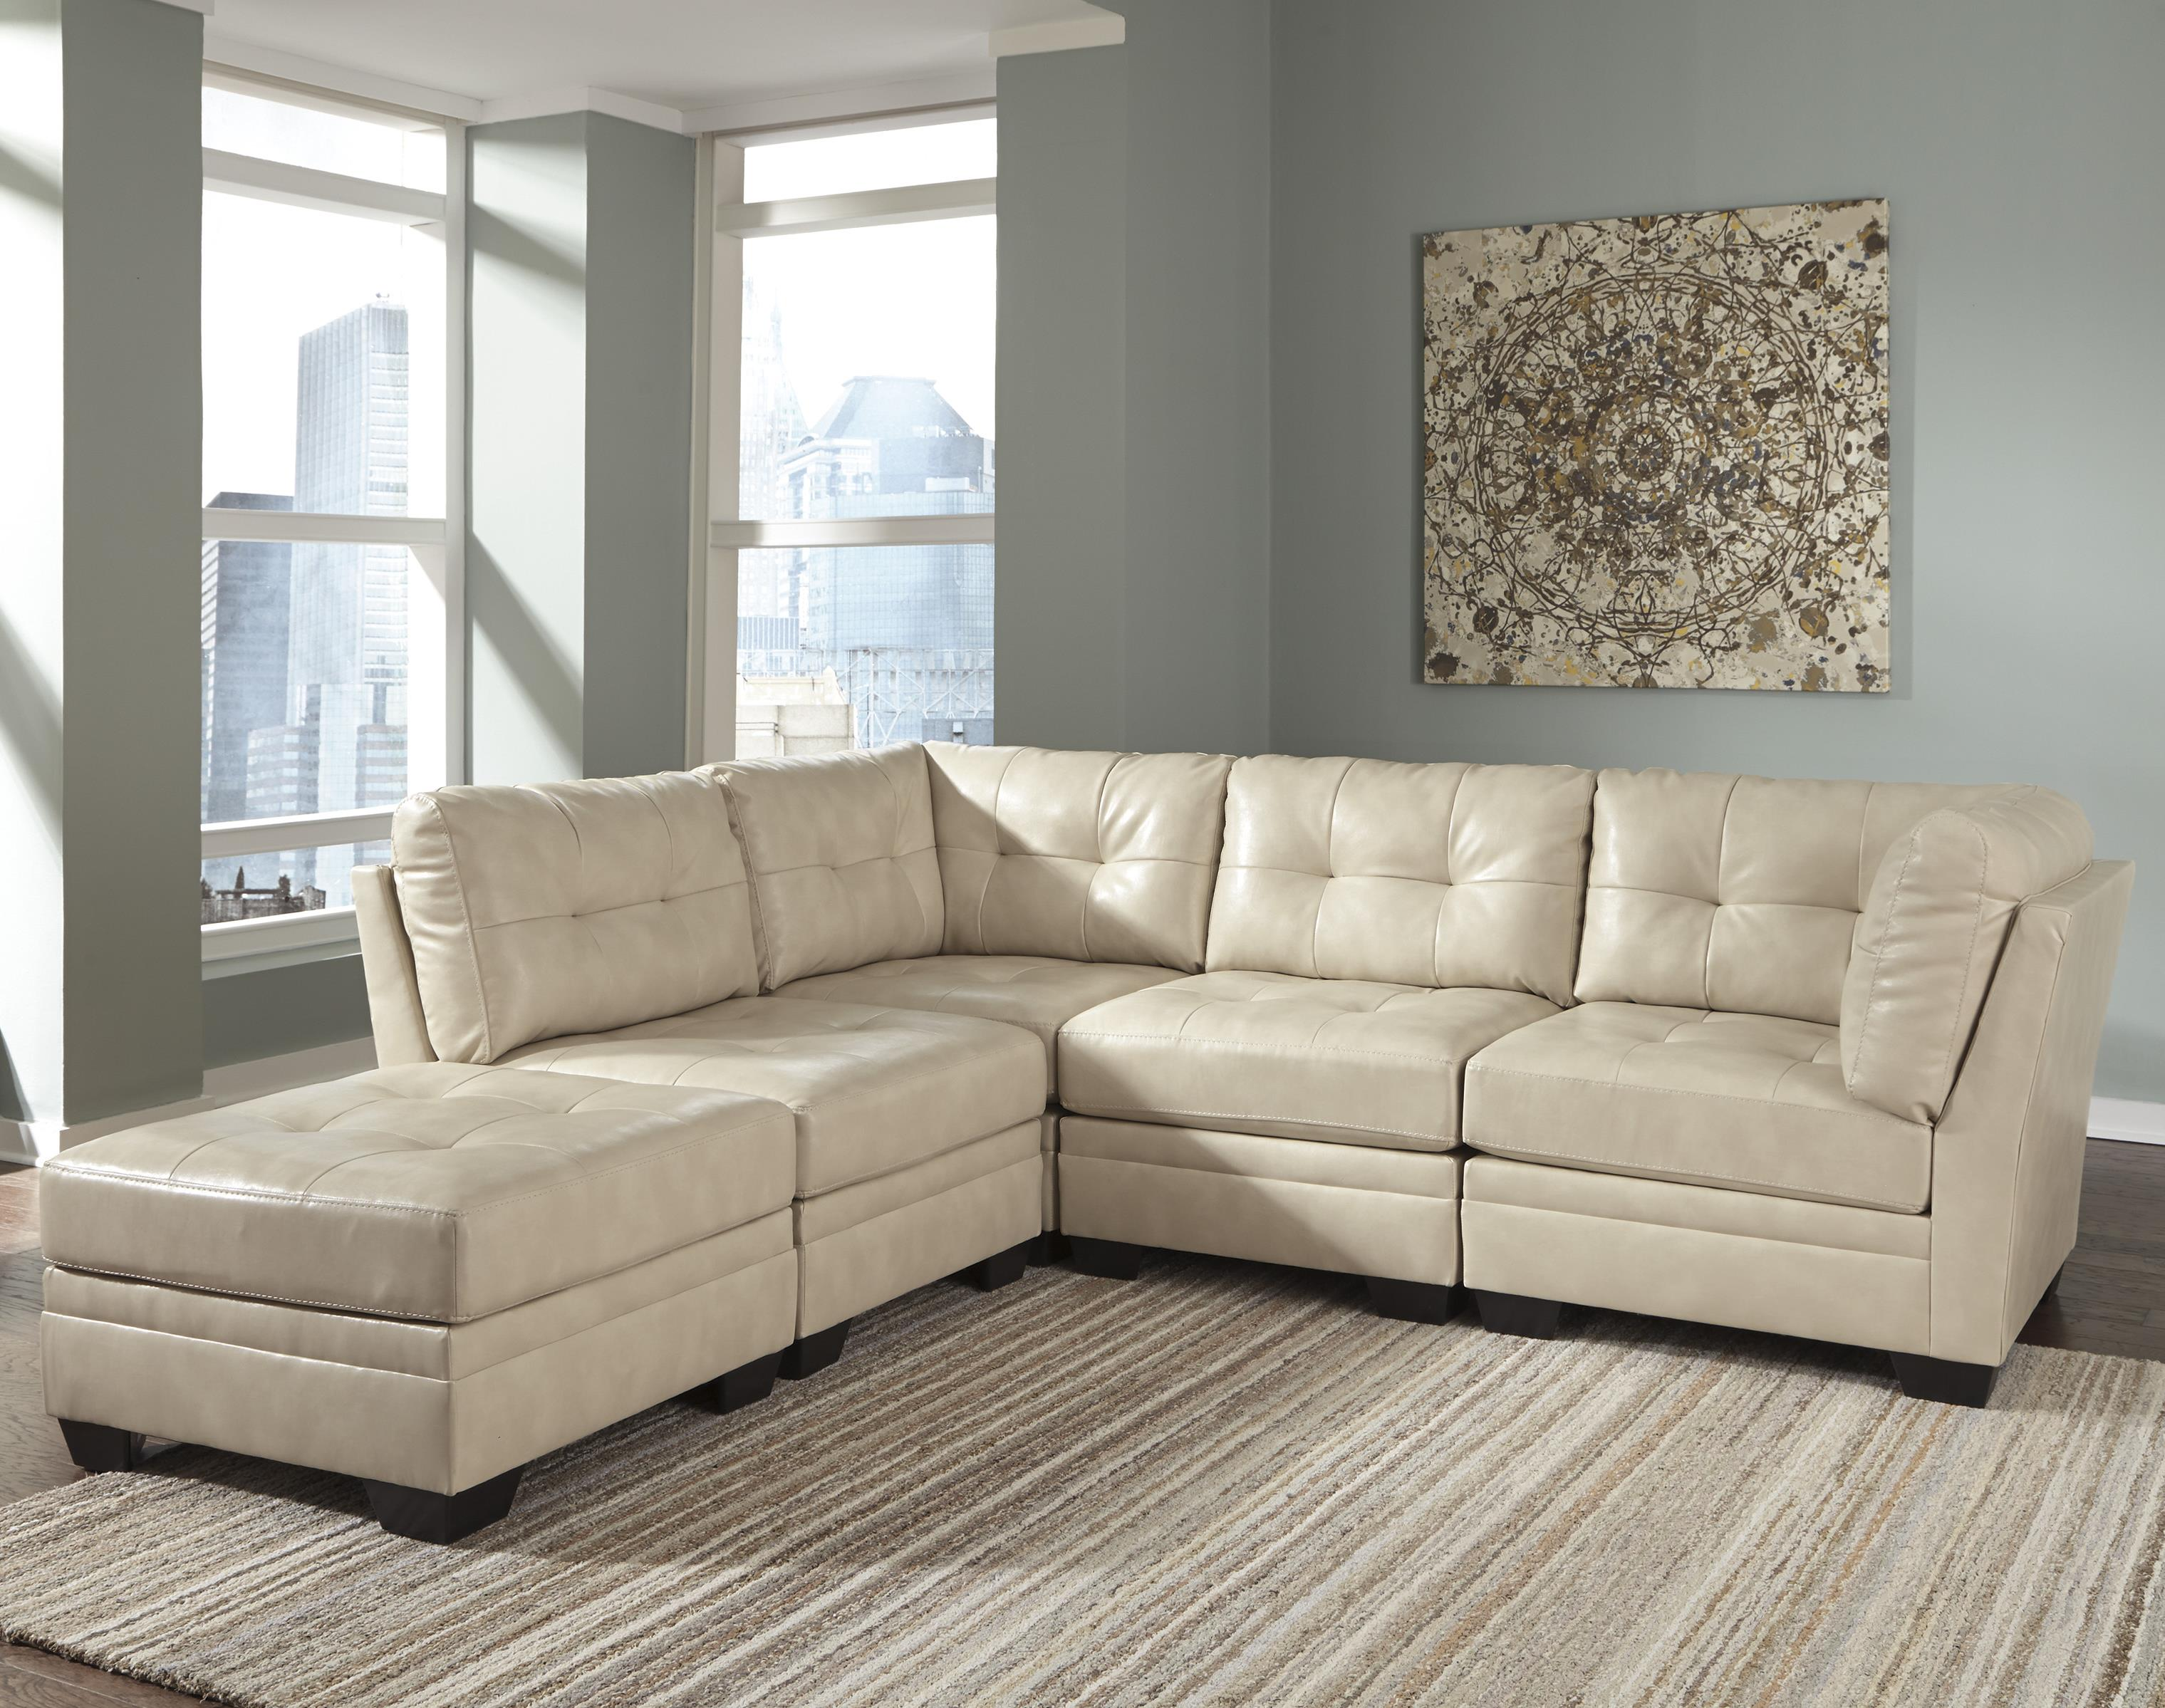 Signature Design by Ashley Khalil DuraBlend® 5-Piece Modular Sectional - Item Number: 6180408+2x46+2x51